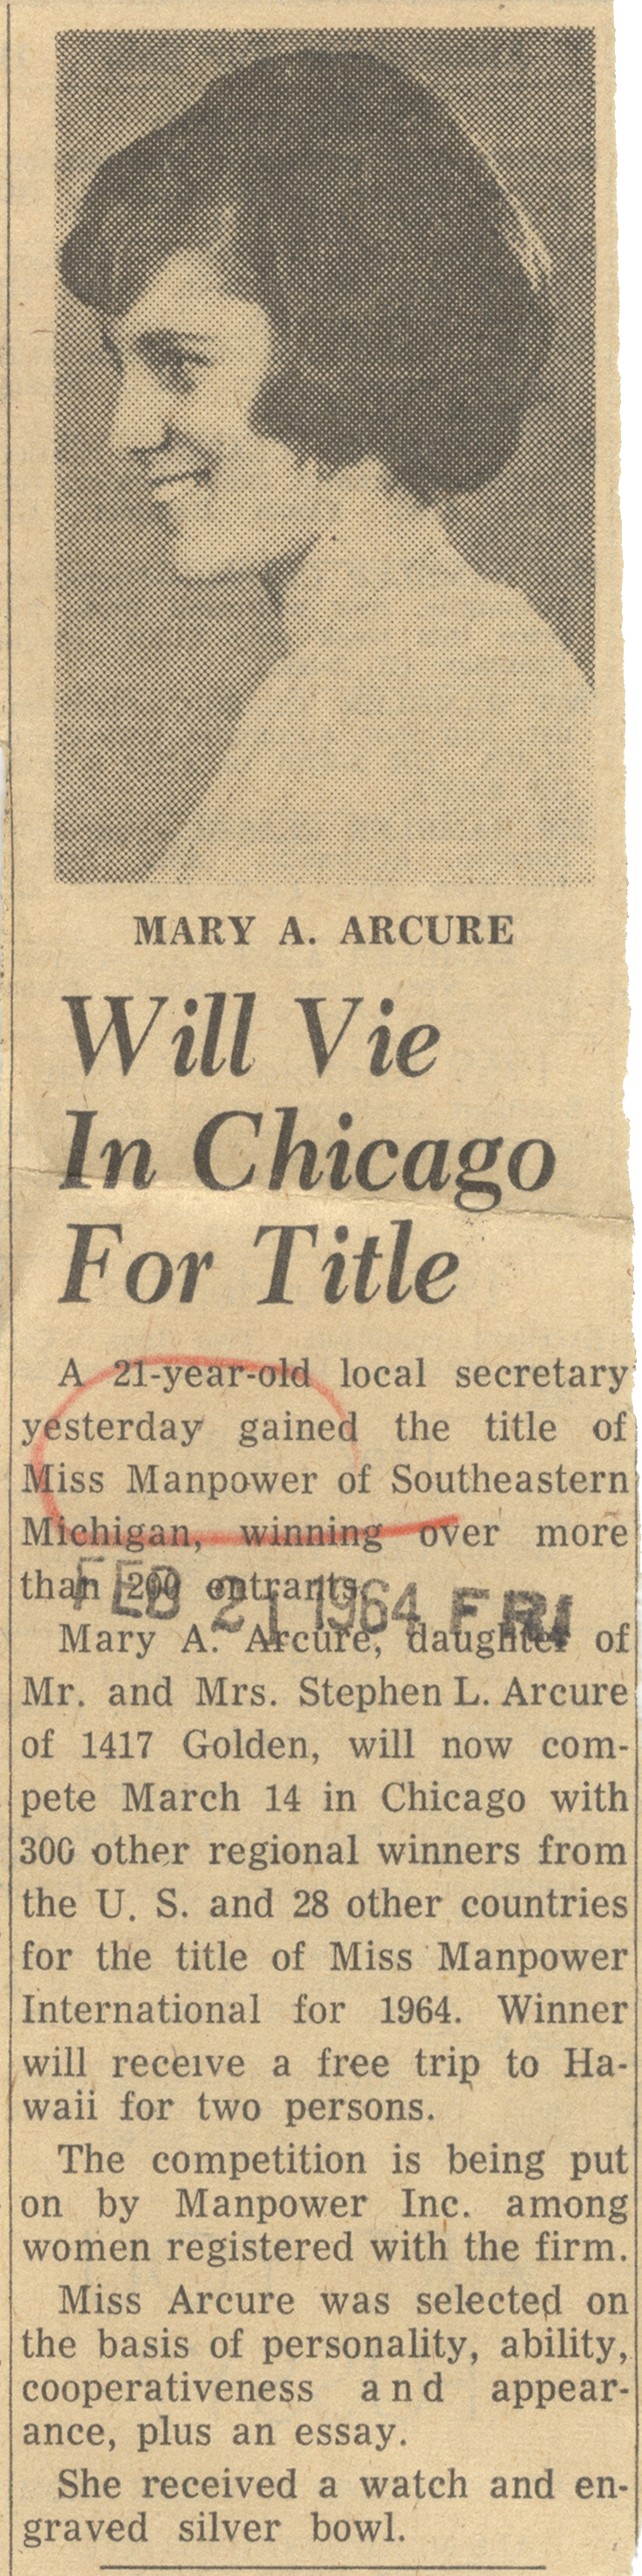 Mary A. Arcure Will Vie In Chicago For Title image